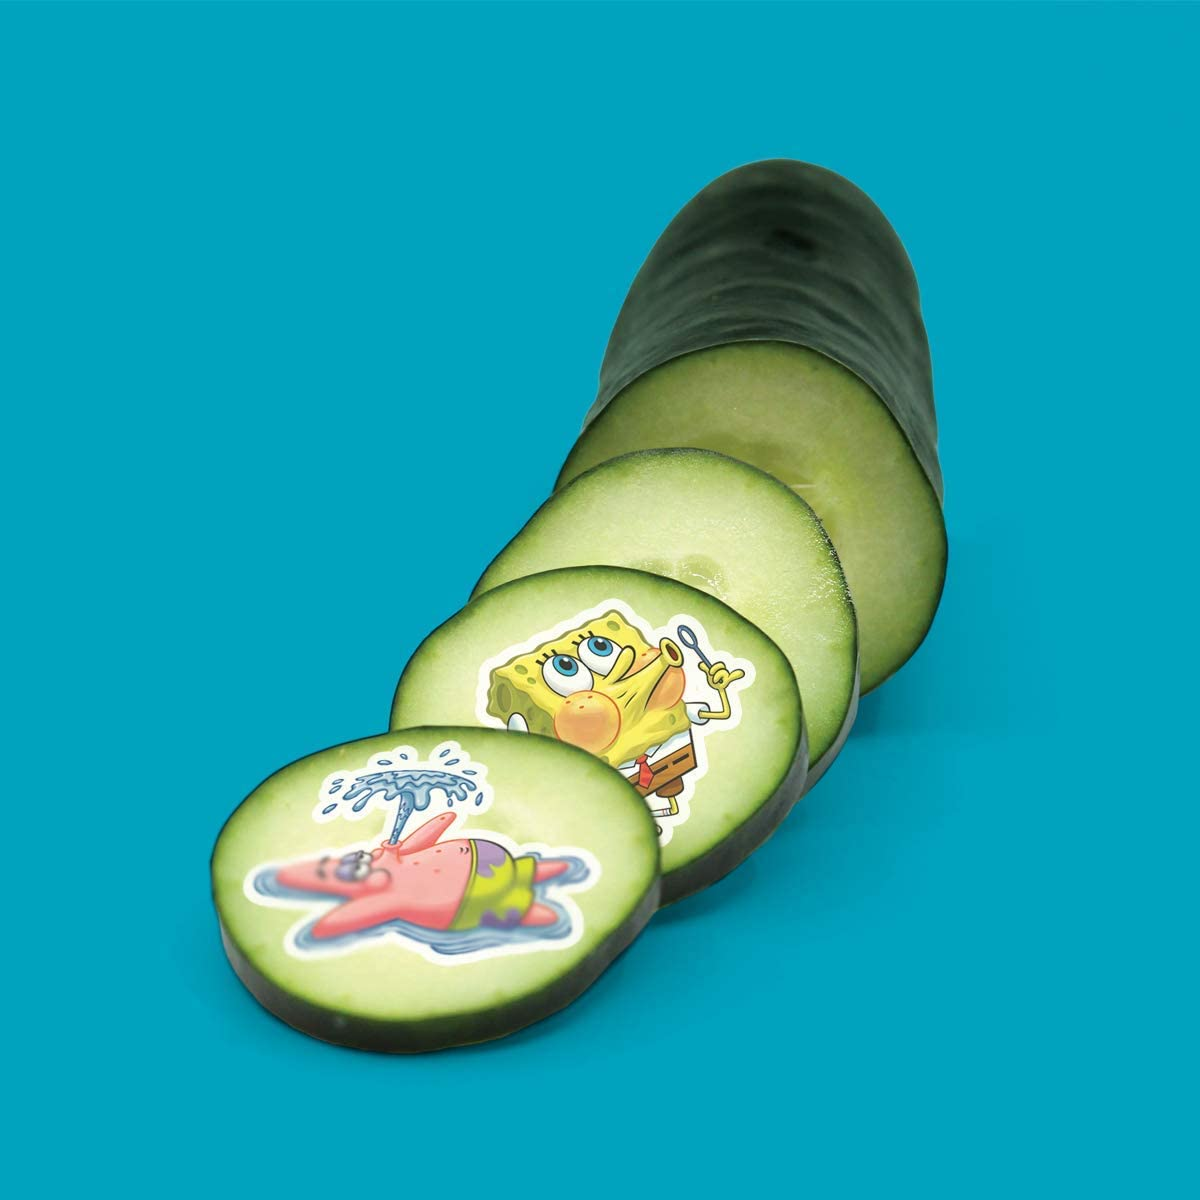 Spongebob No Sugar Edible Stickers Sticky Lickits All-Natural 5-Pack